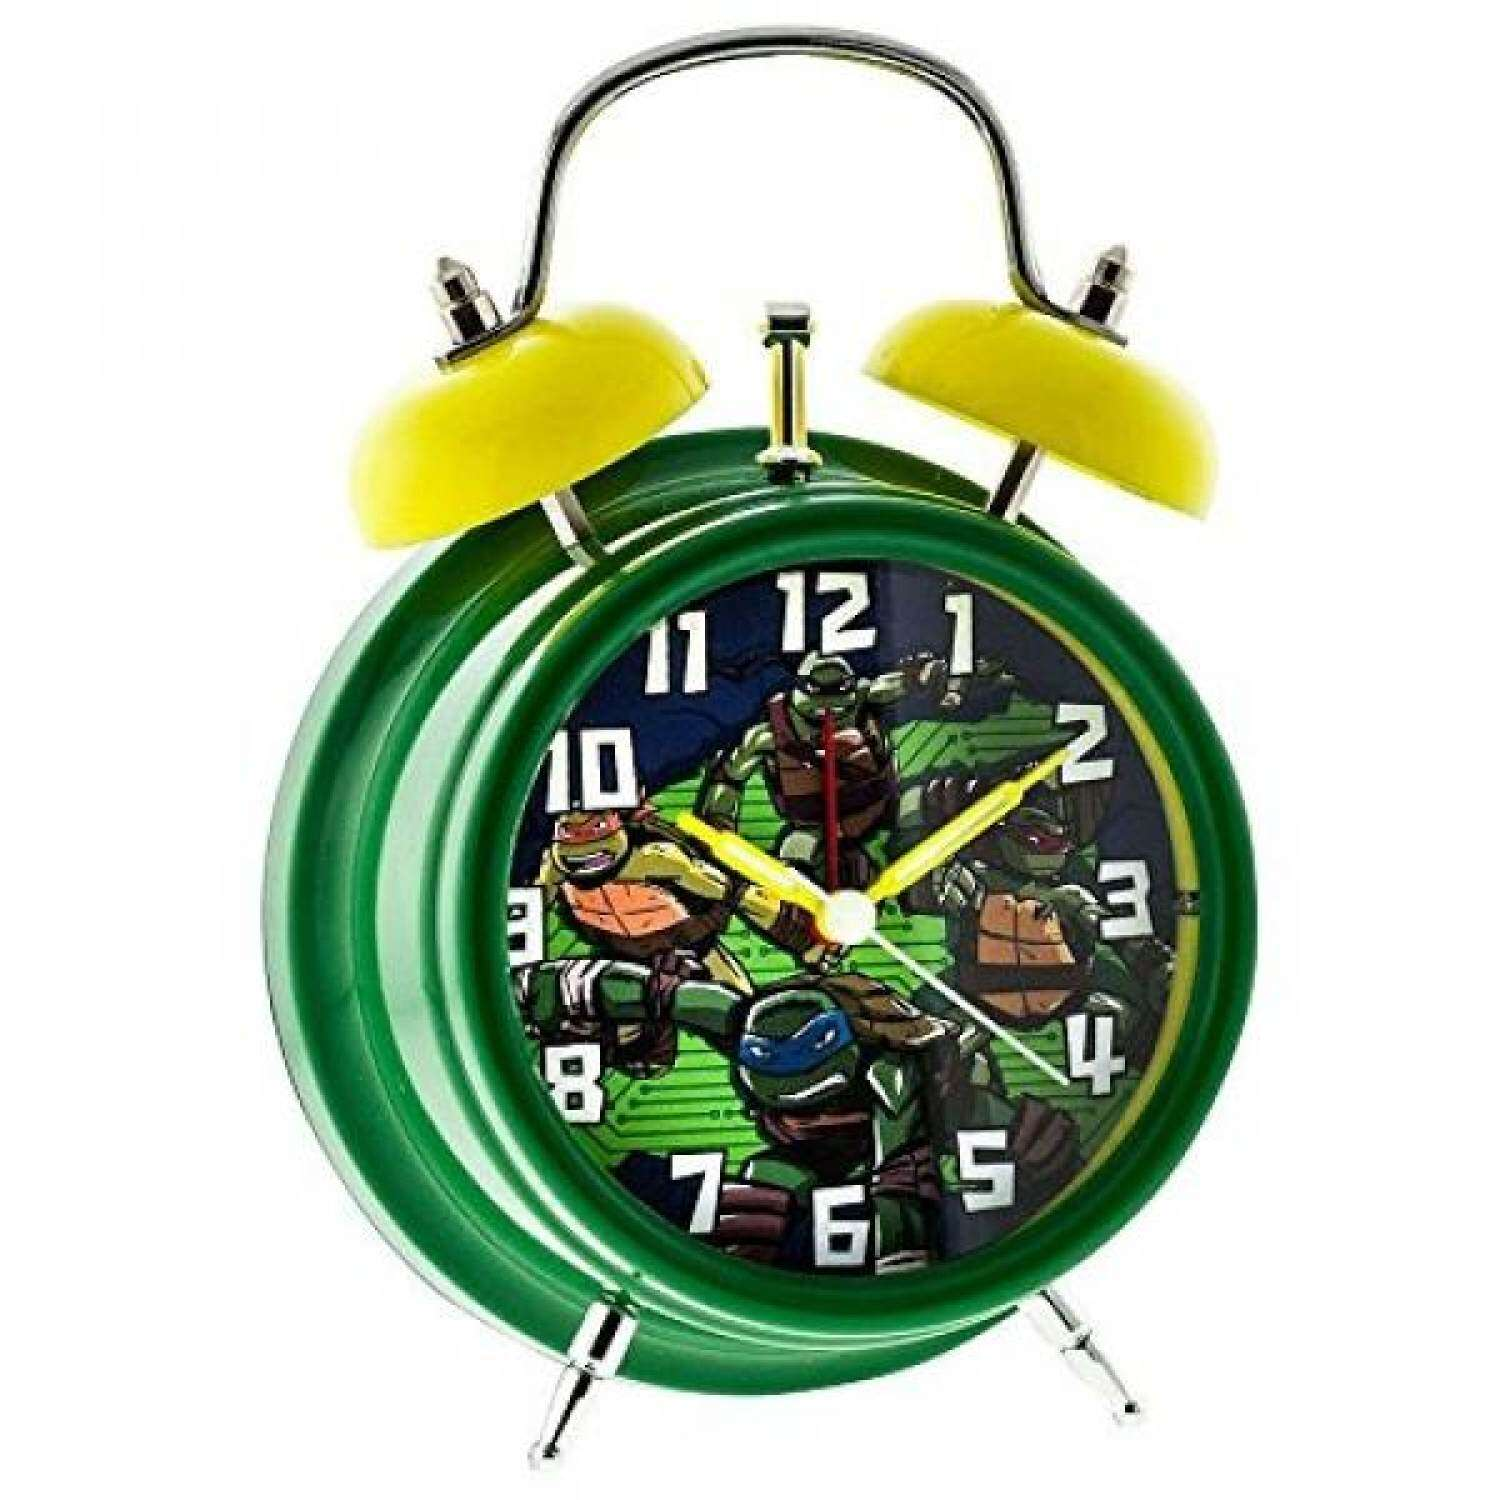 Light-Up Twin Bell Teenage Mutant Ninja Turtles Alarm ClockGreen/Yellow BAIGUAN WT253 - intl